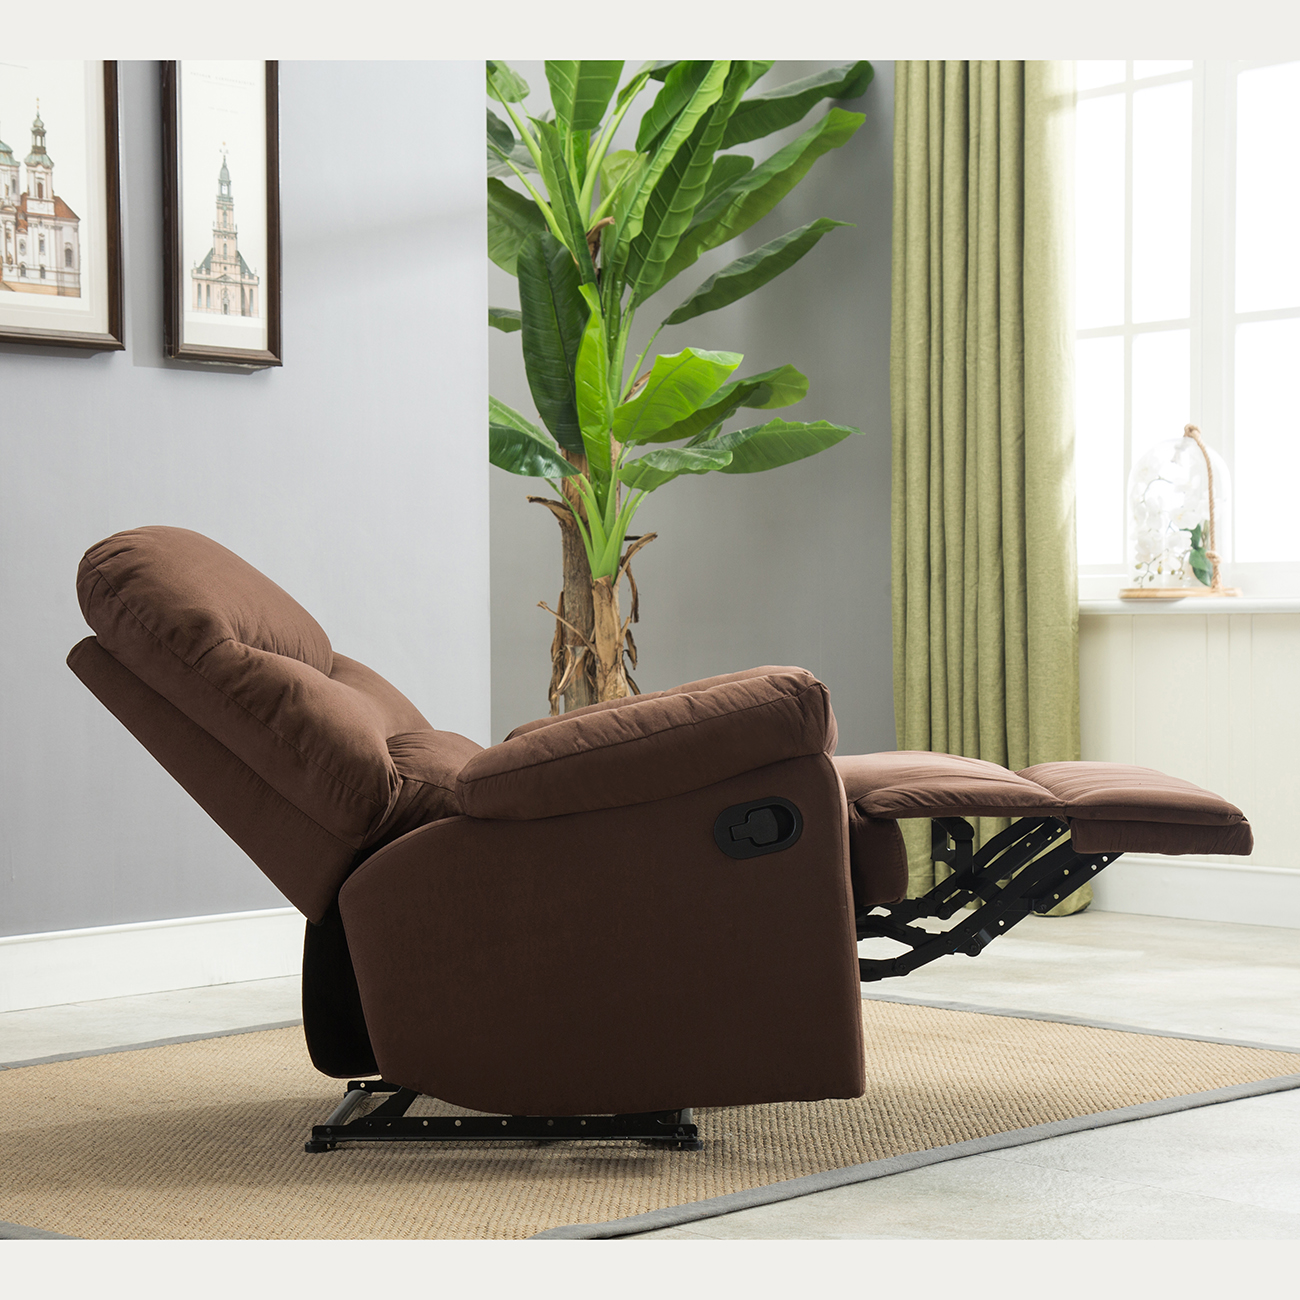 Microfiber Living Room Chairs Recliner Chair Sofa Living Room Furniture Microfiber Reclining